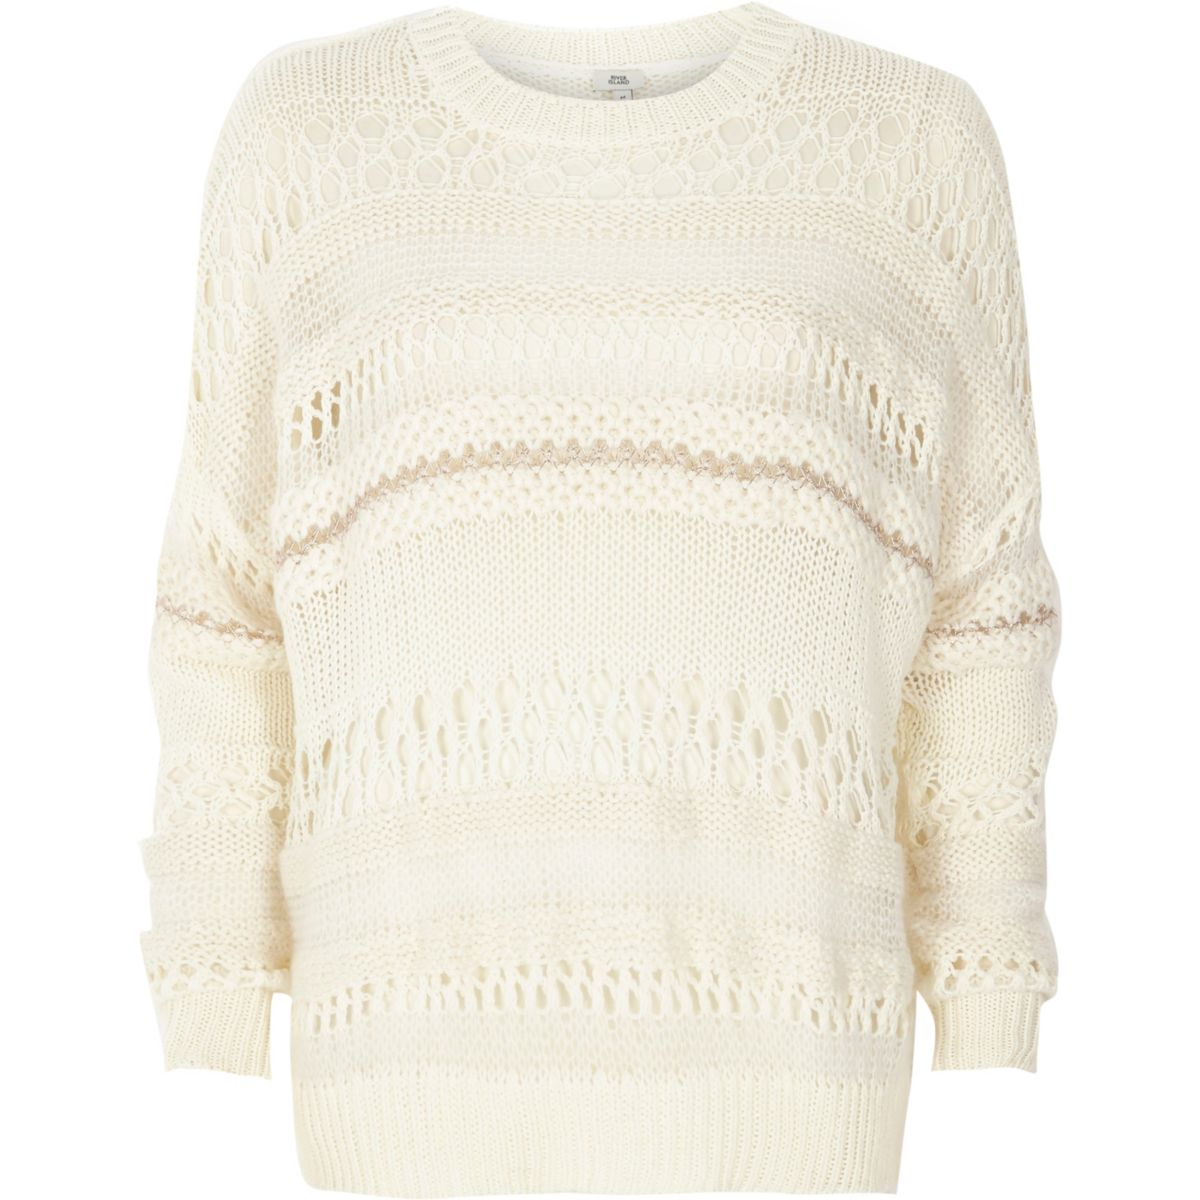 White mixed knit slouch sweater